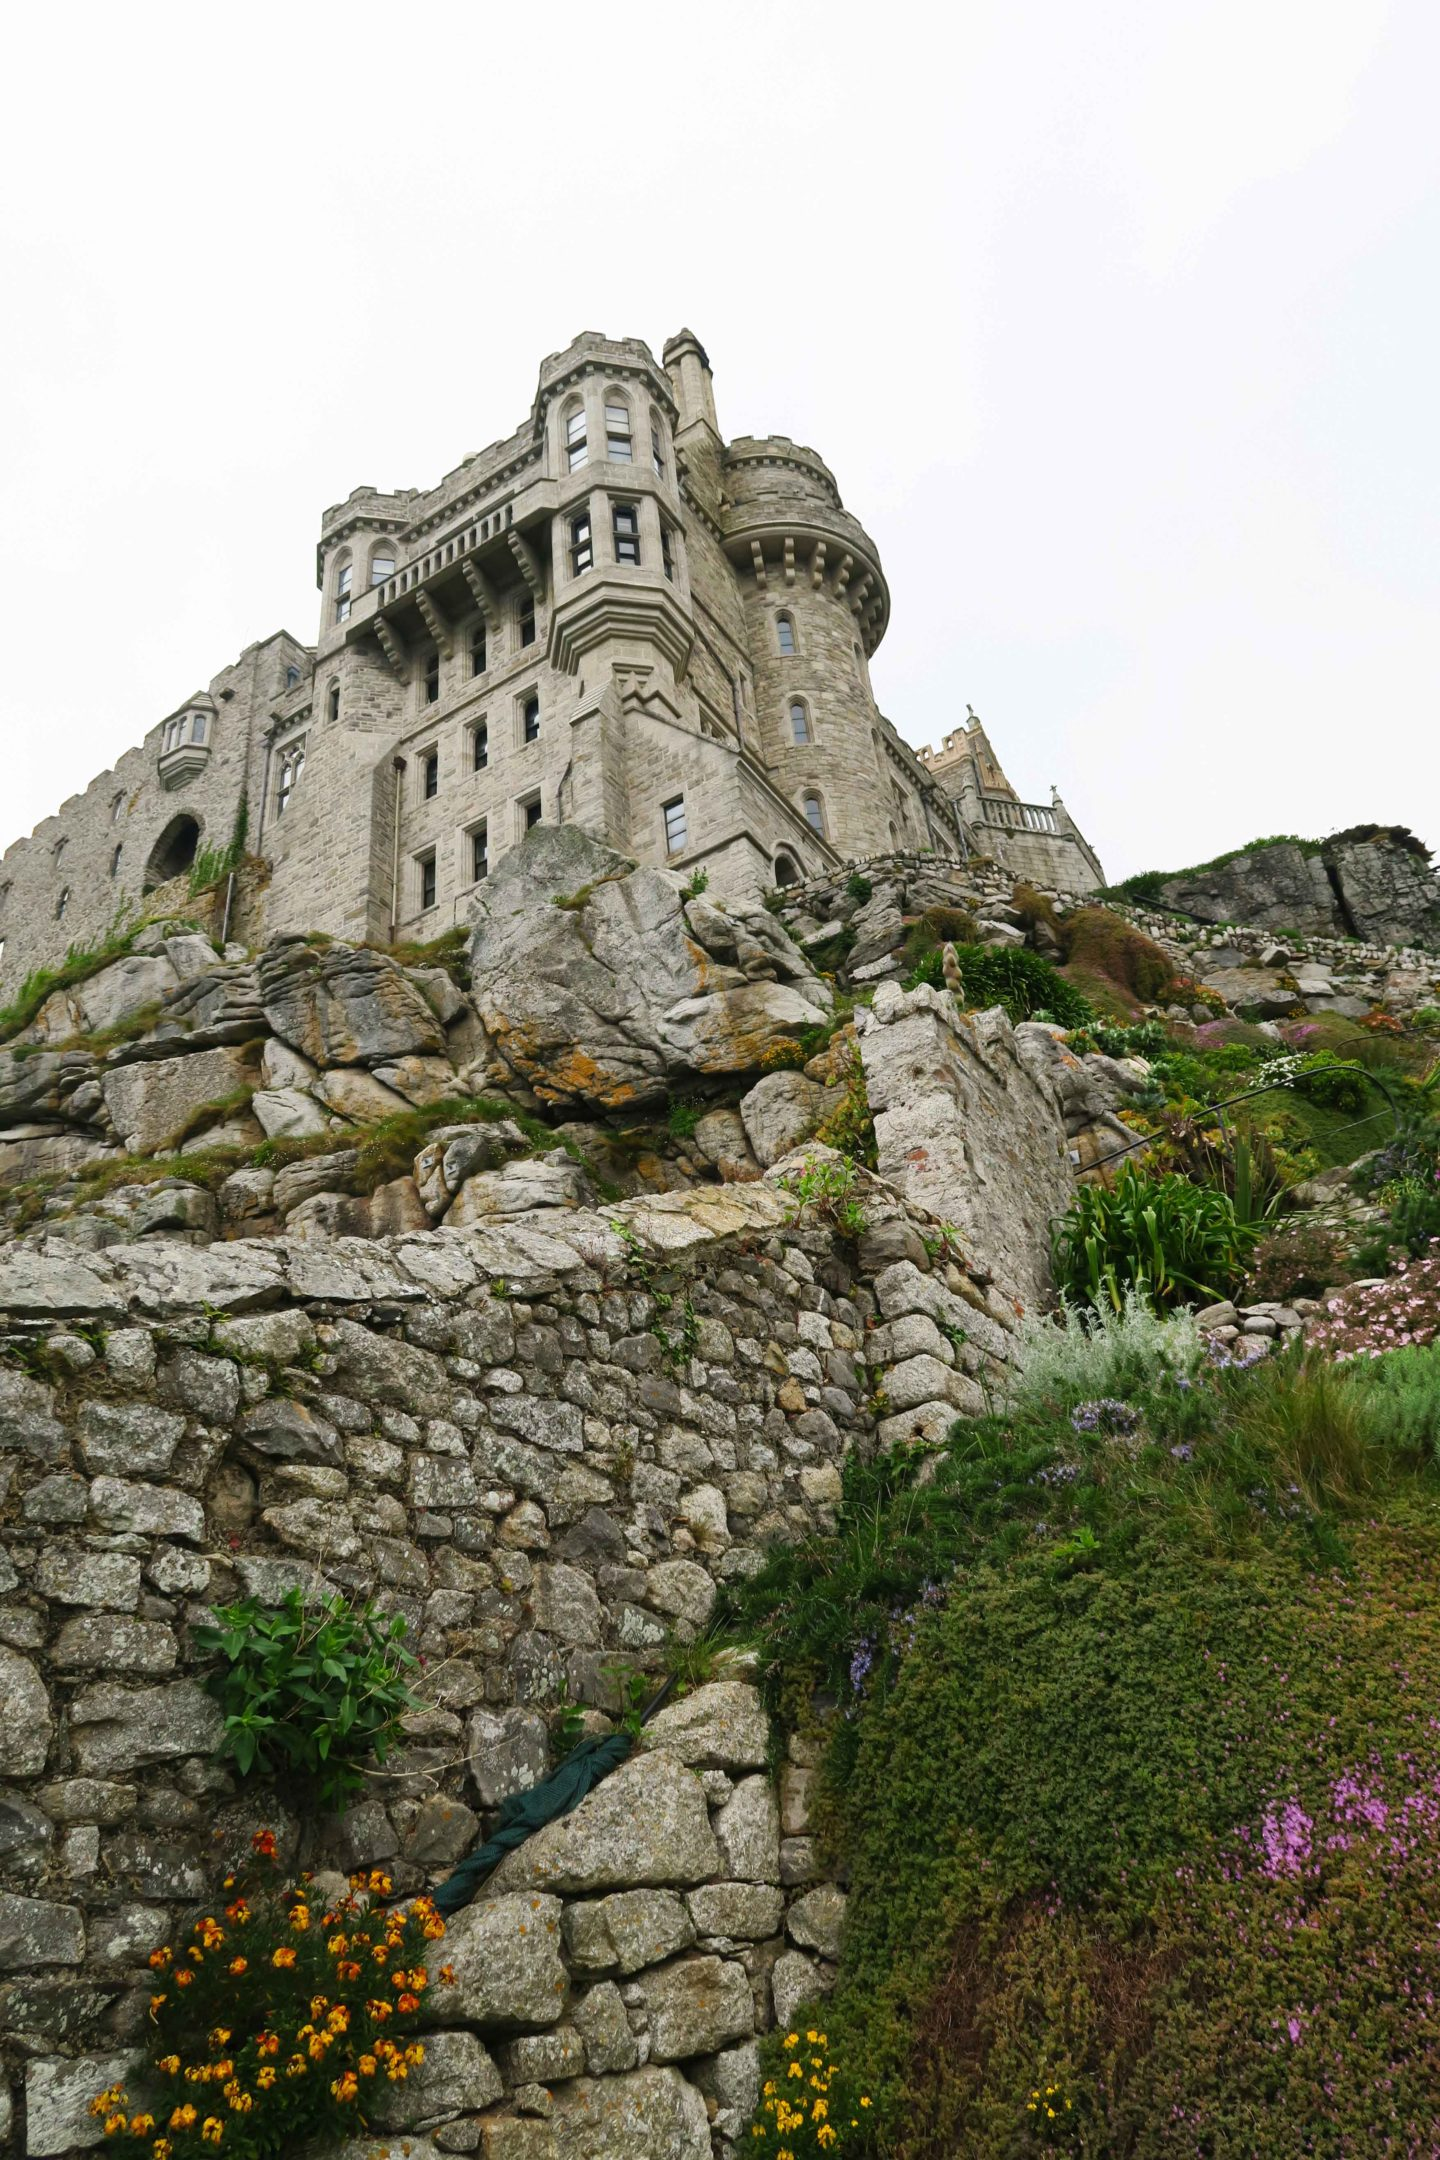 st michaels mount castle owend by the national trust in cornwall